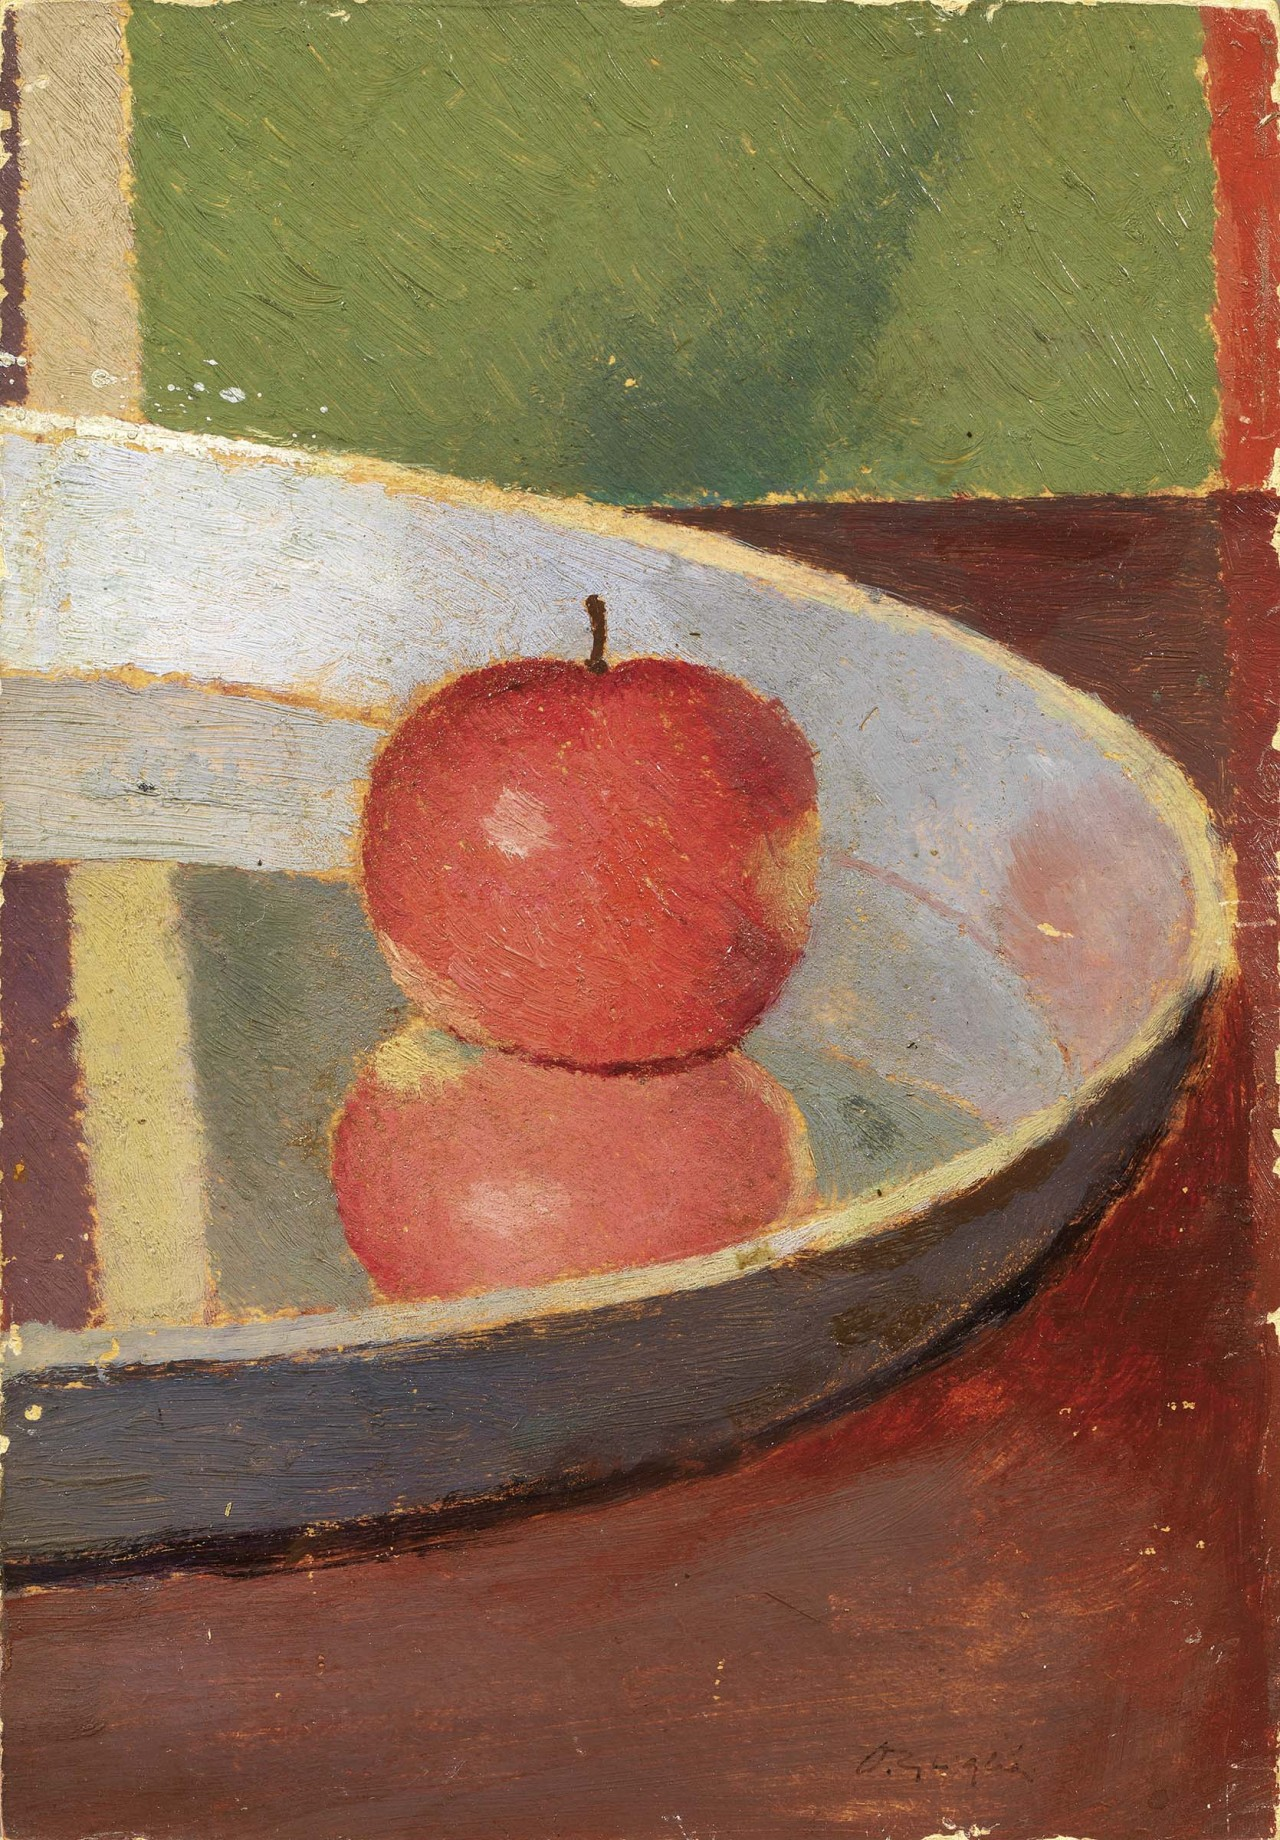 thunderstruck9: Oscar Ghiglia (Italian, 1876-1945), La mela [Apple], c.1922-25. Oil on cardboard, 25 x 17.2 cm.